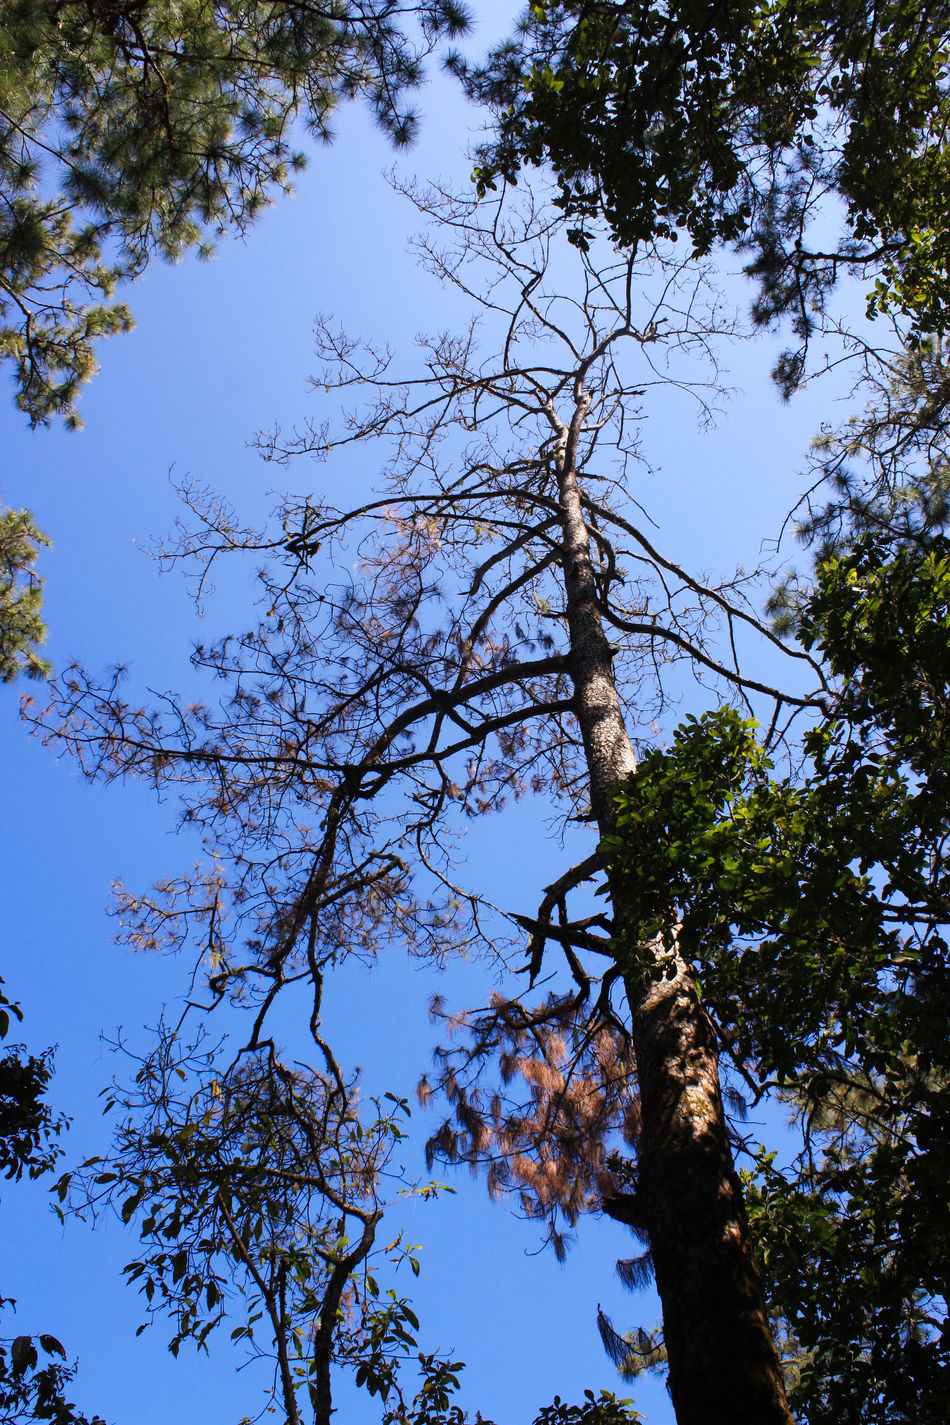 Tree and blue sky Blue Sky Branch Branches Chiang Mai | Thailand Doi Luang Doi Luang, Chiang Dao Hiking Mountains Sky Thailand Tree Trees Trekking